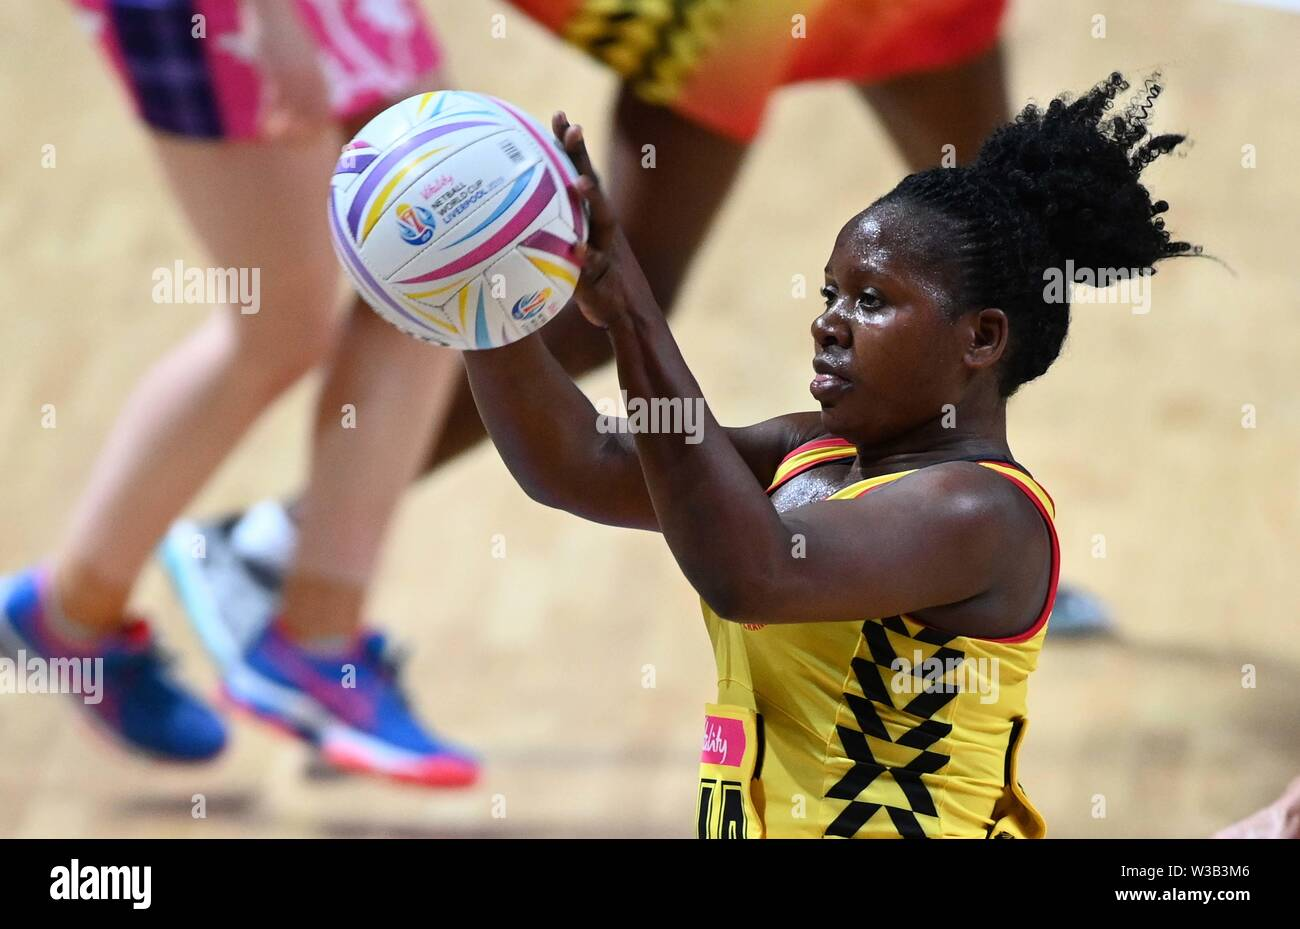 Liverpool, UK. 14 July 2019. Ruth Meeme (Uganda) during the Preliminary game between Uganda and Scotland at the Netball World Cup. M and S arena, Liverpool. Merseyside. UK. Credit Garry Bowdenh/SIP photo agency/Alamy live news. Stock Photo